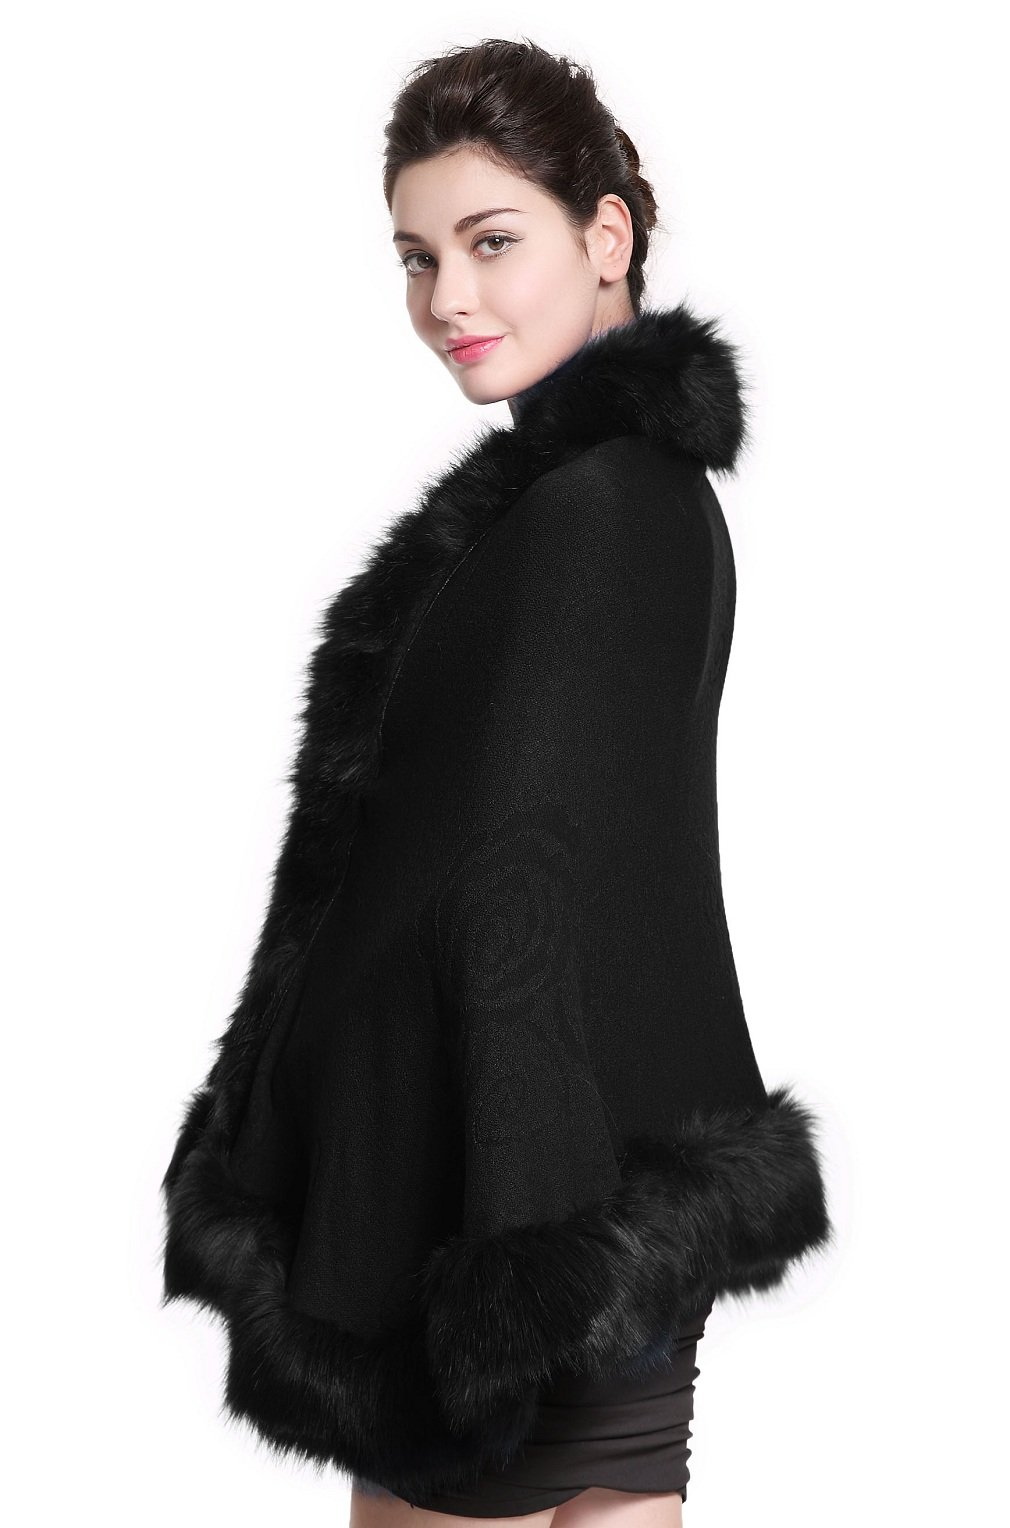 Faux Fur Shawl Wrap Stole Shrug Bridal Winter Wedding with Hook Black by MISSYDRESS (Image #1)